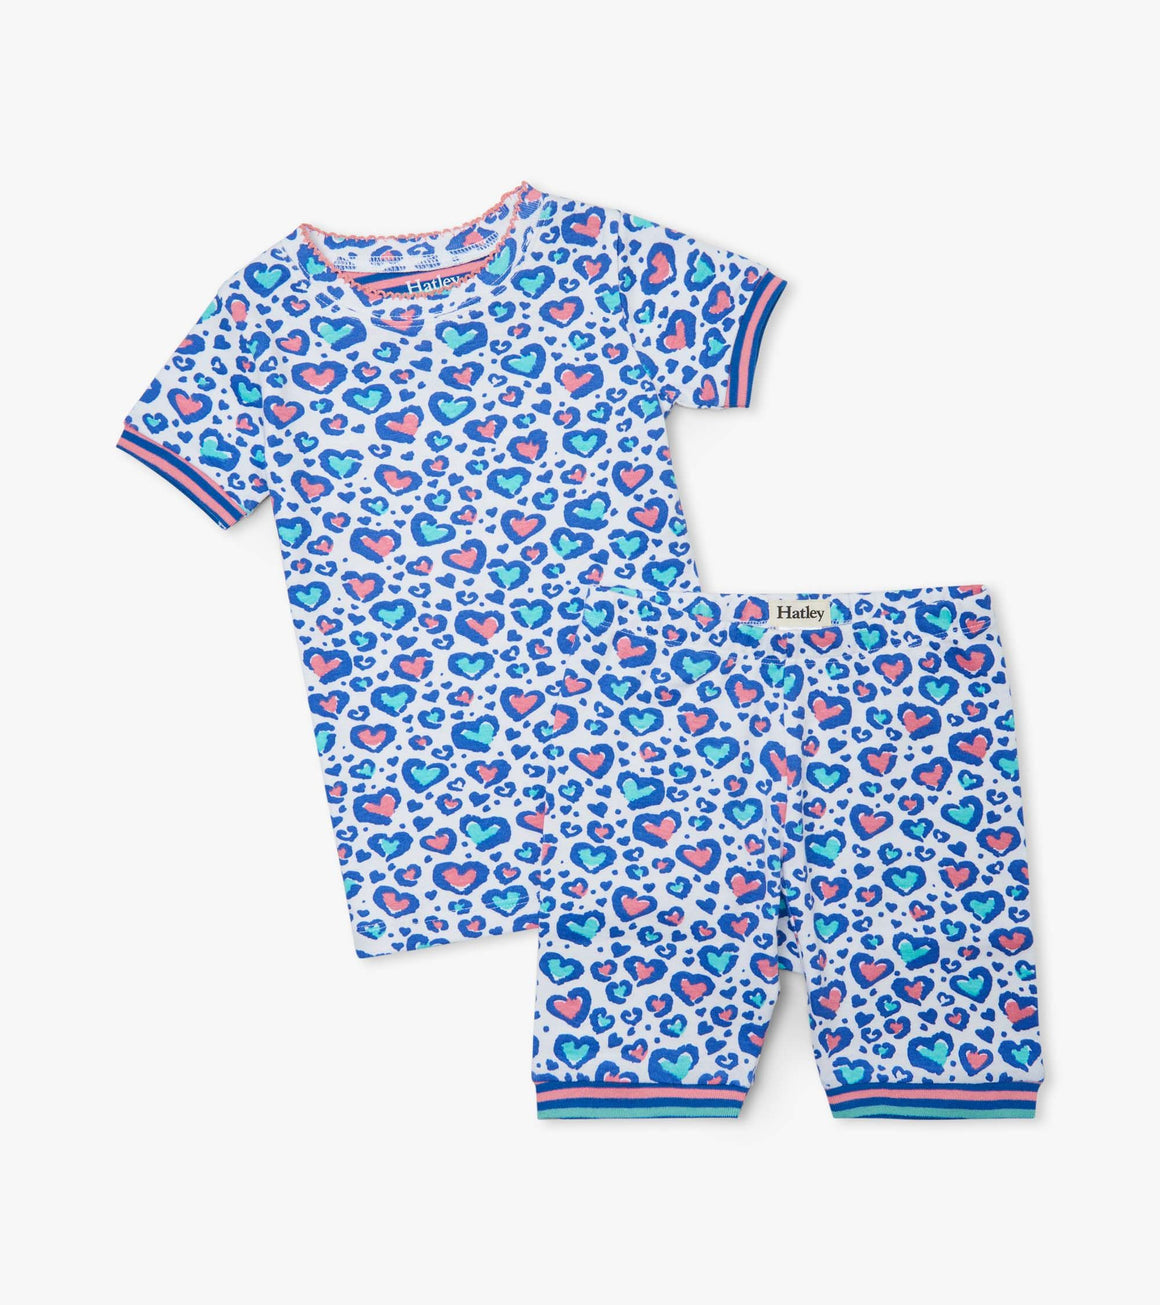 Hatley | Cheetah Hearts Organic Cotton Pajama Shorts Set